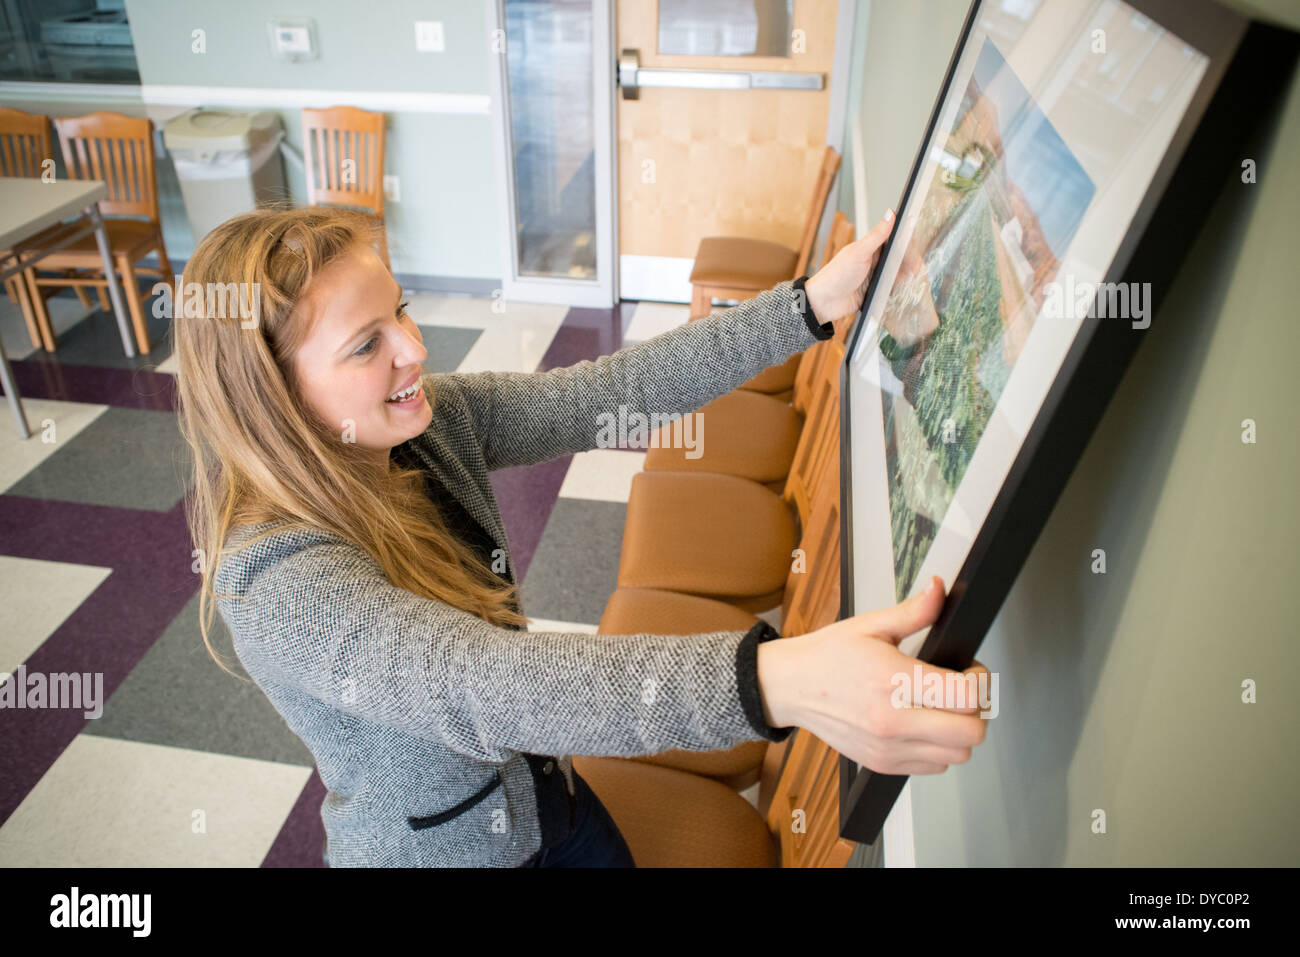 Young woman hanging photographs on wall - Stock Image